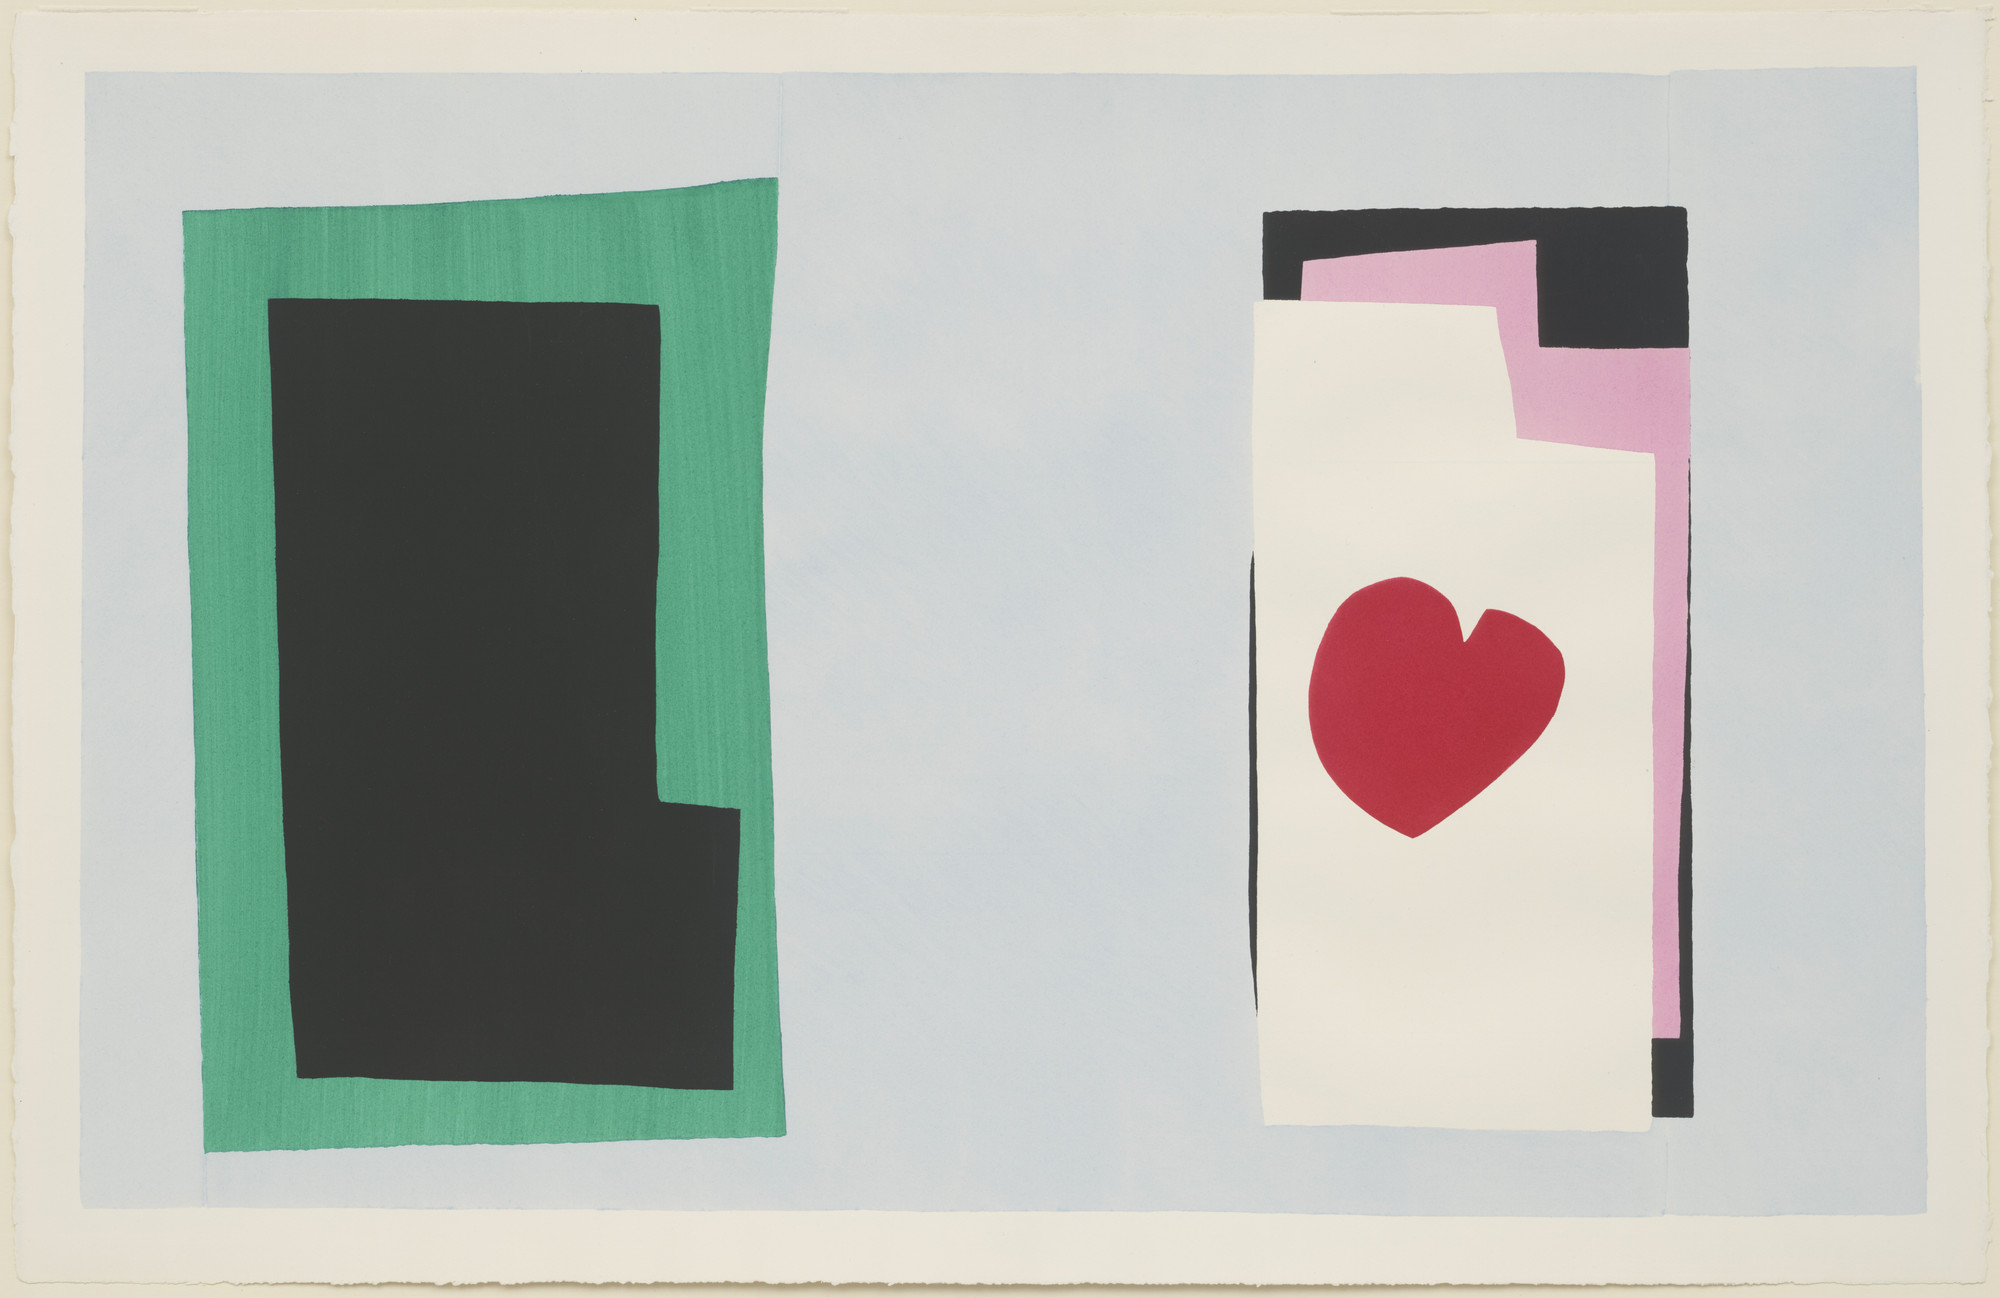 Henri Matisse. The Heart (Le Coeur) from Jazz. 1947